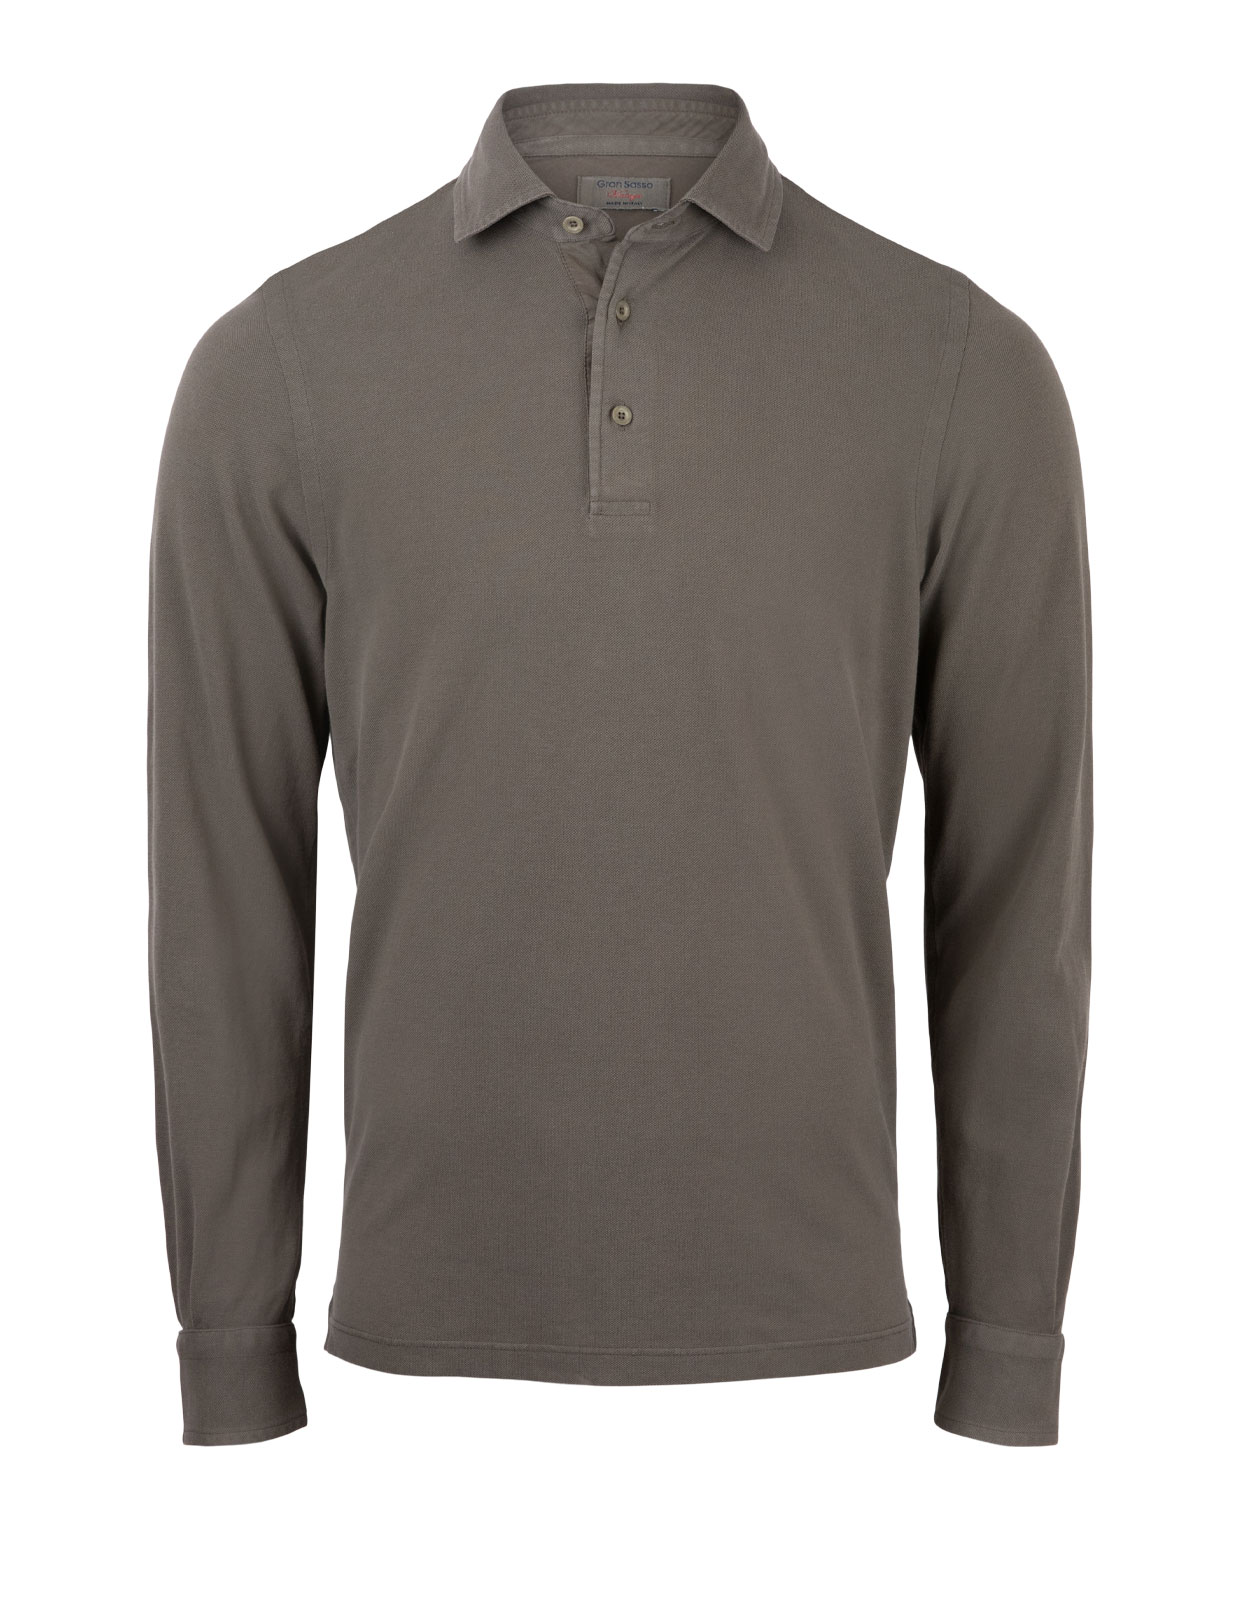 Polo Shirt Long Sleeve Vintage Cotton Olive